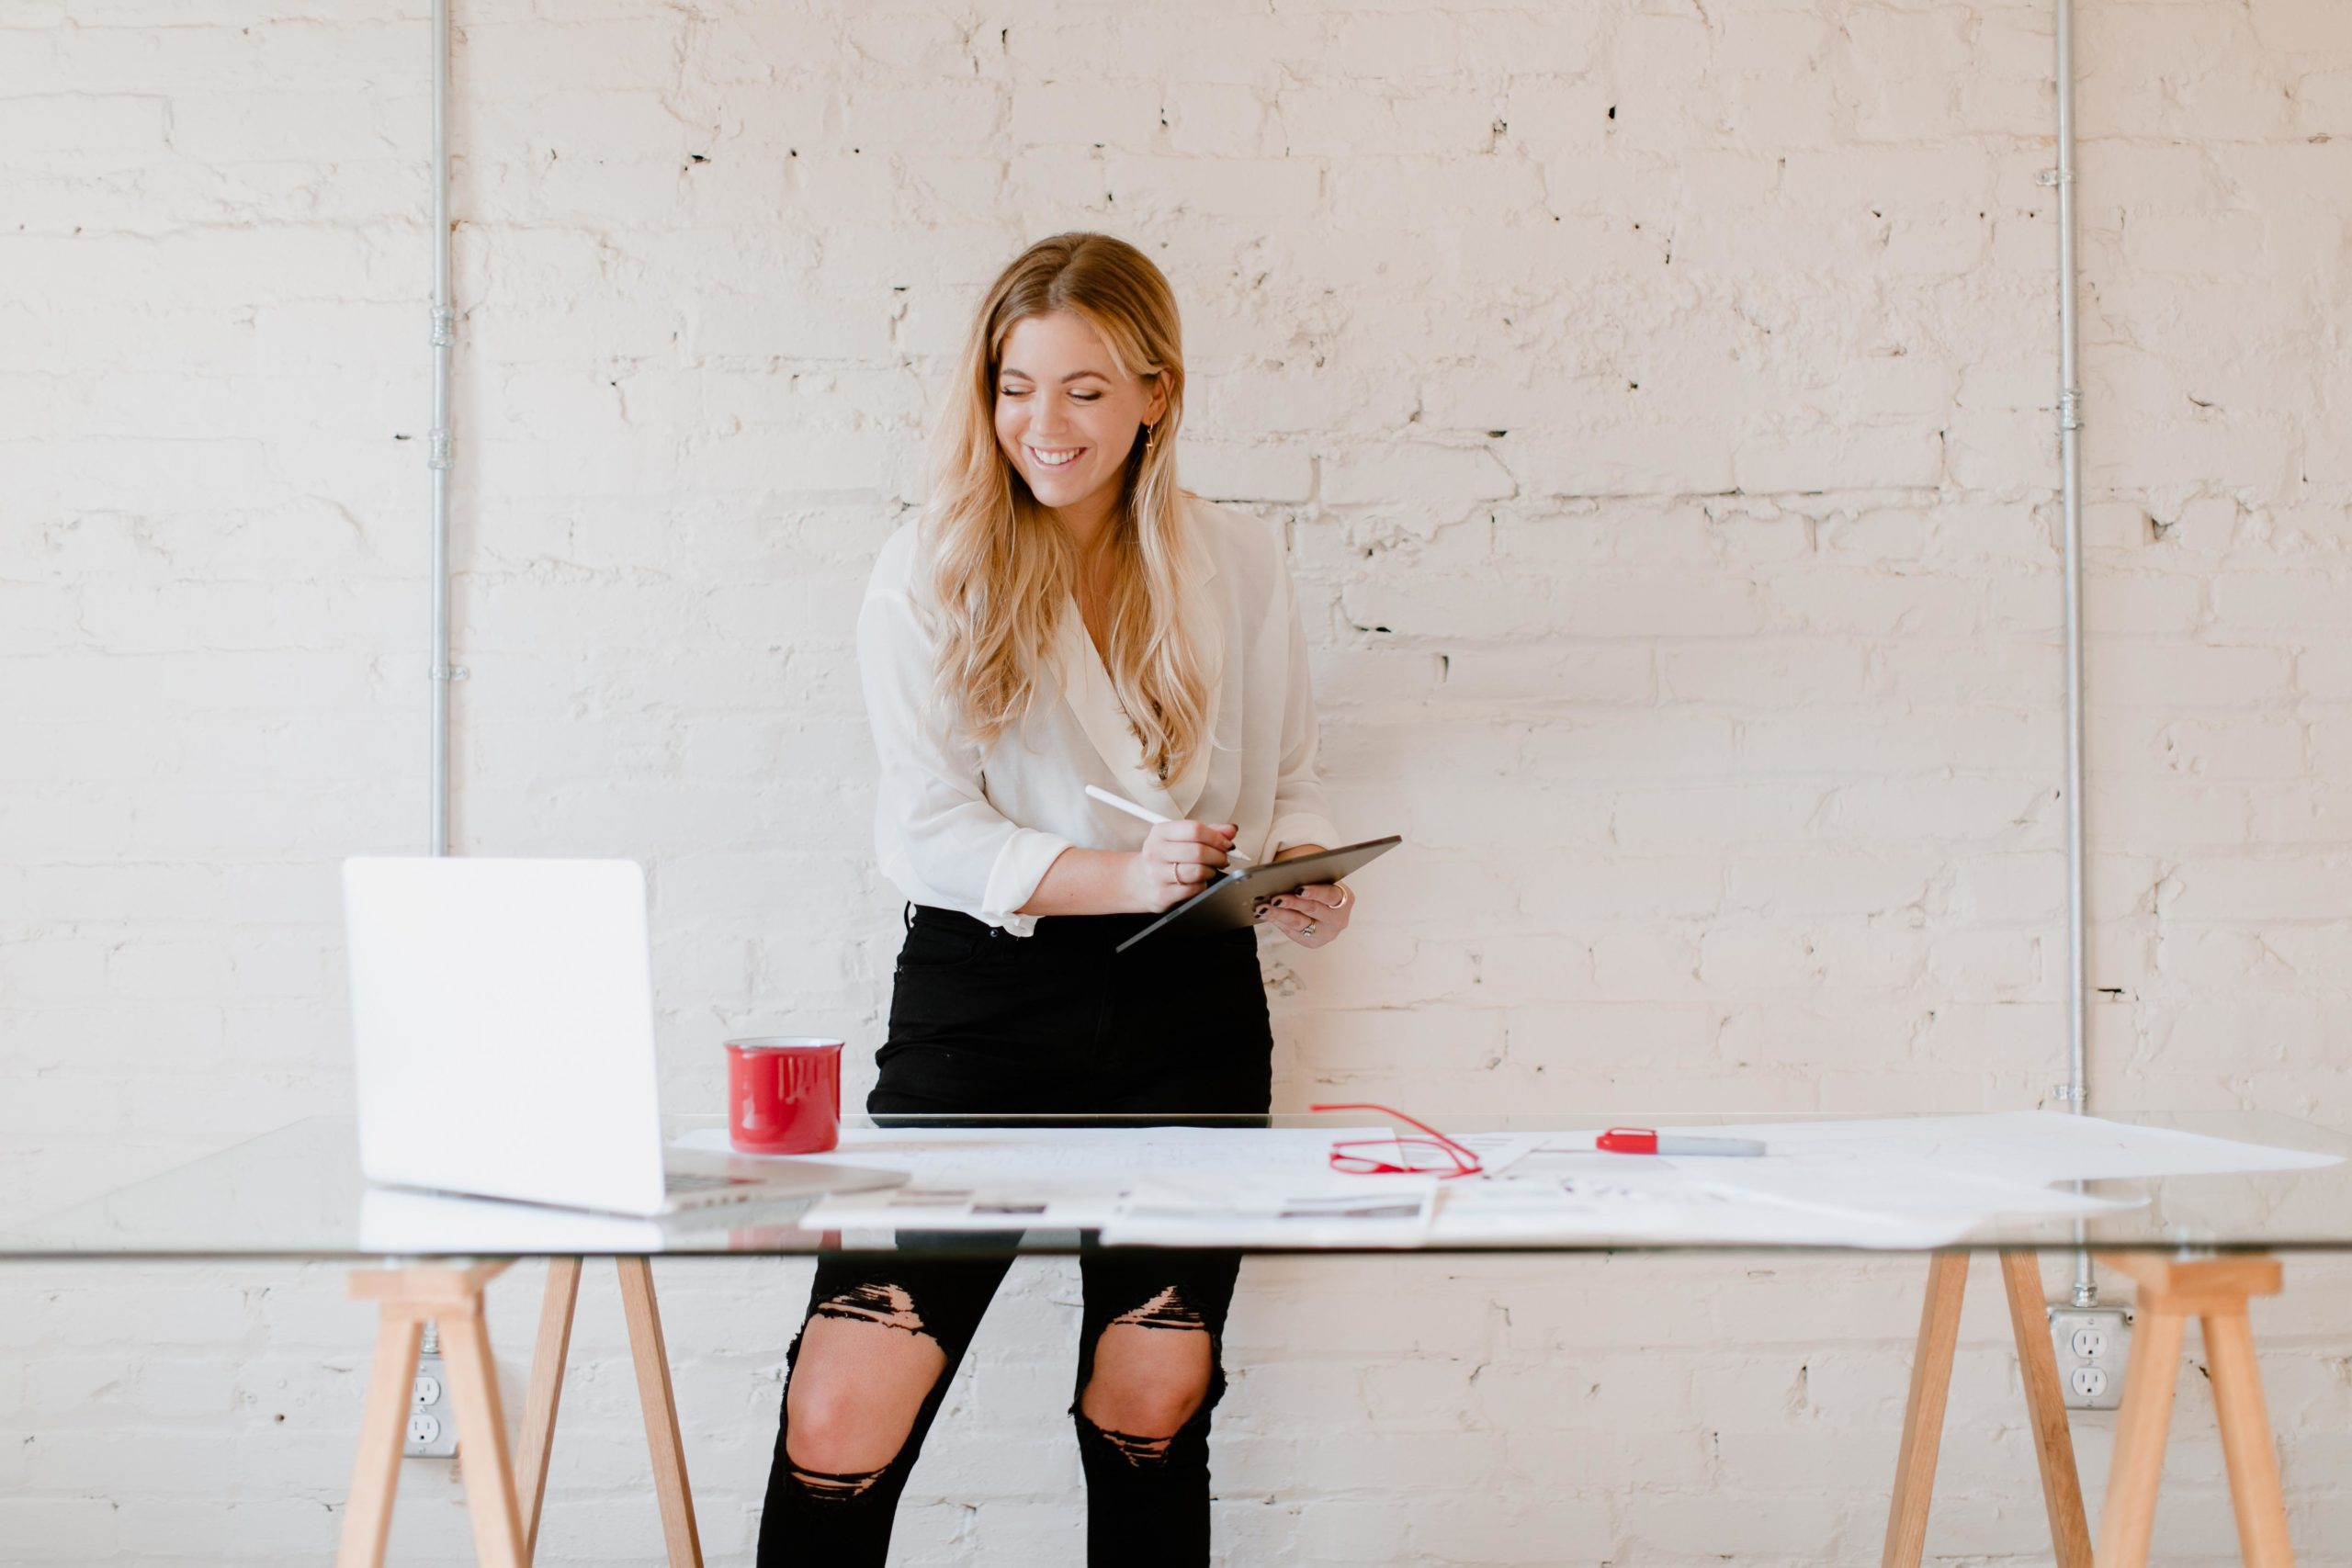 Woman is standing behind messy desk, smiling and taking notes on a paper.